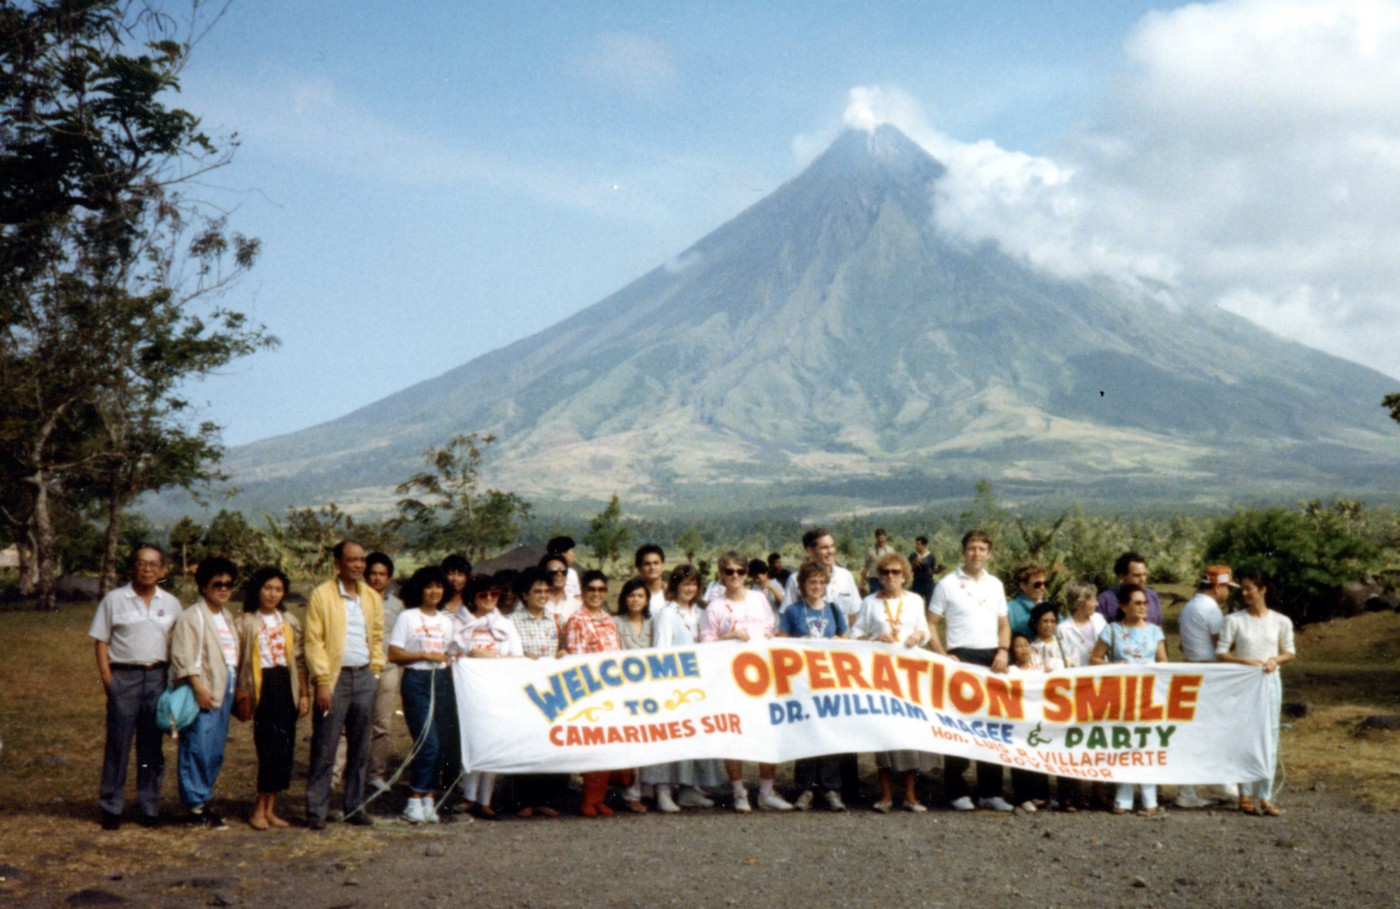 A group poses in front of a mountain in the Philippines during the first-ever Operation Smile mission.